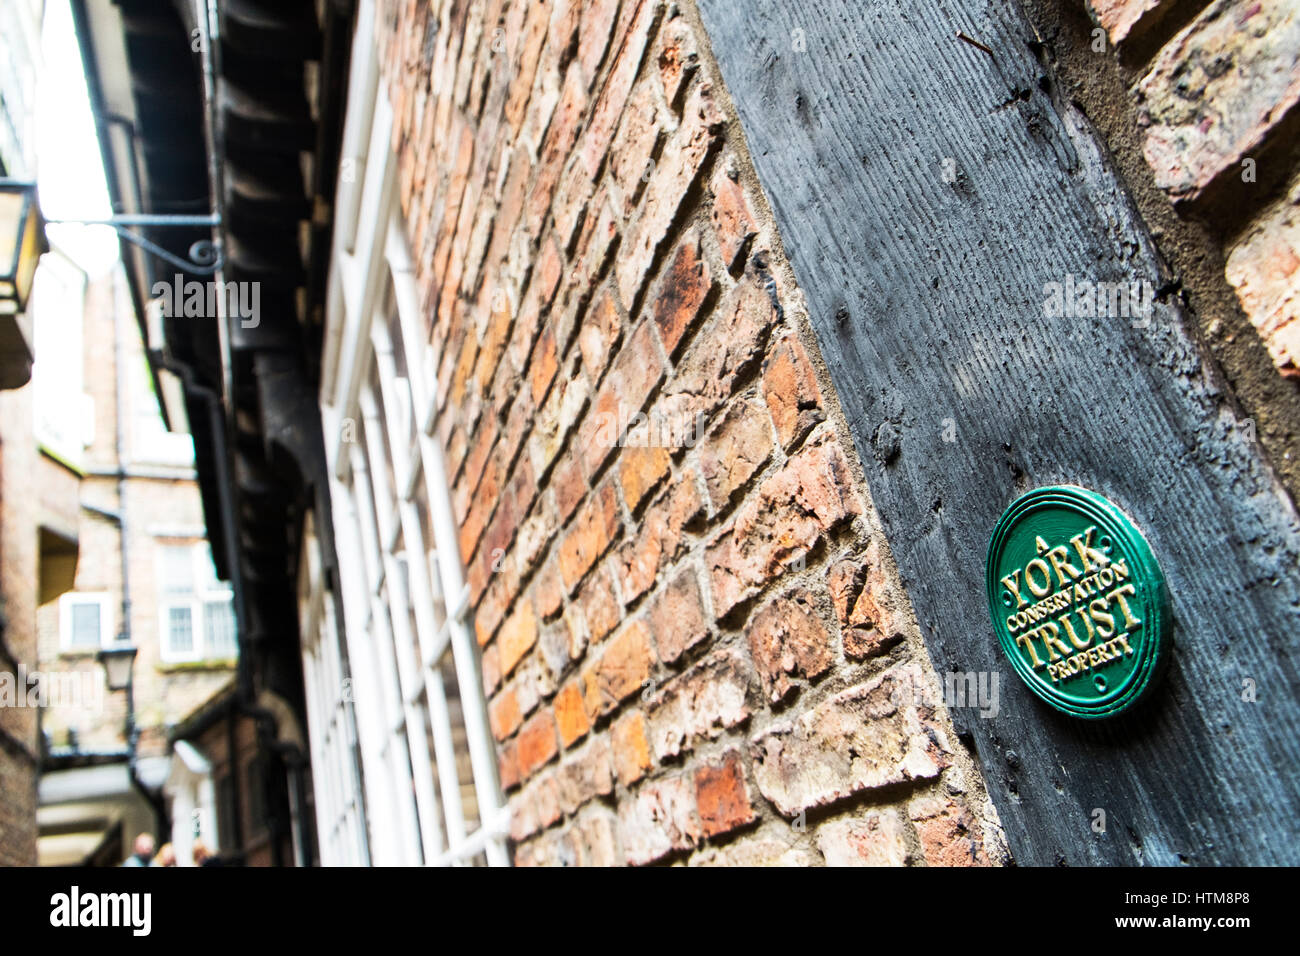 A York conservation trust property plaque sign on wall old properties in York status UK England Old building York - Stock Image